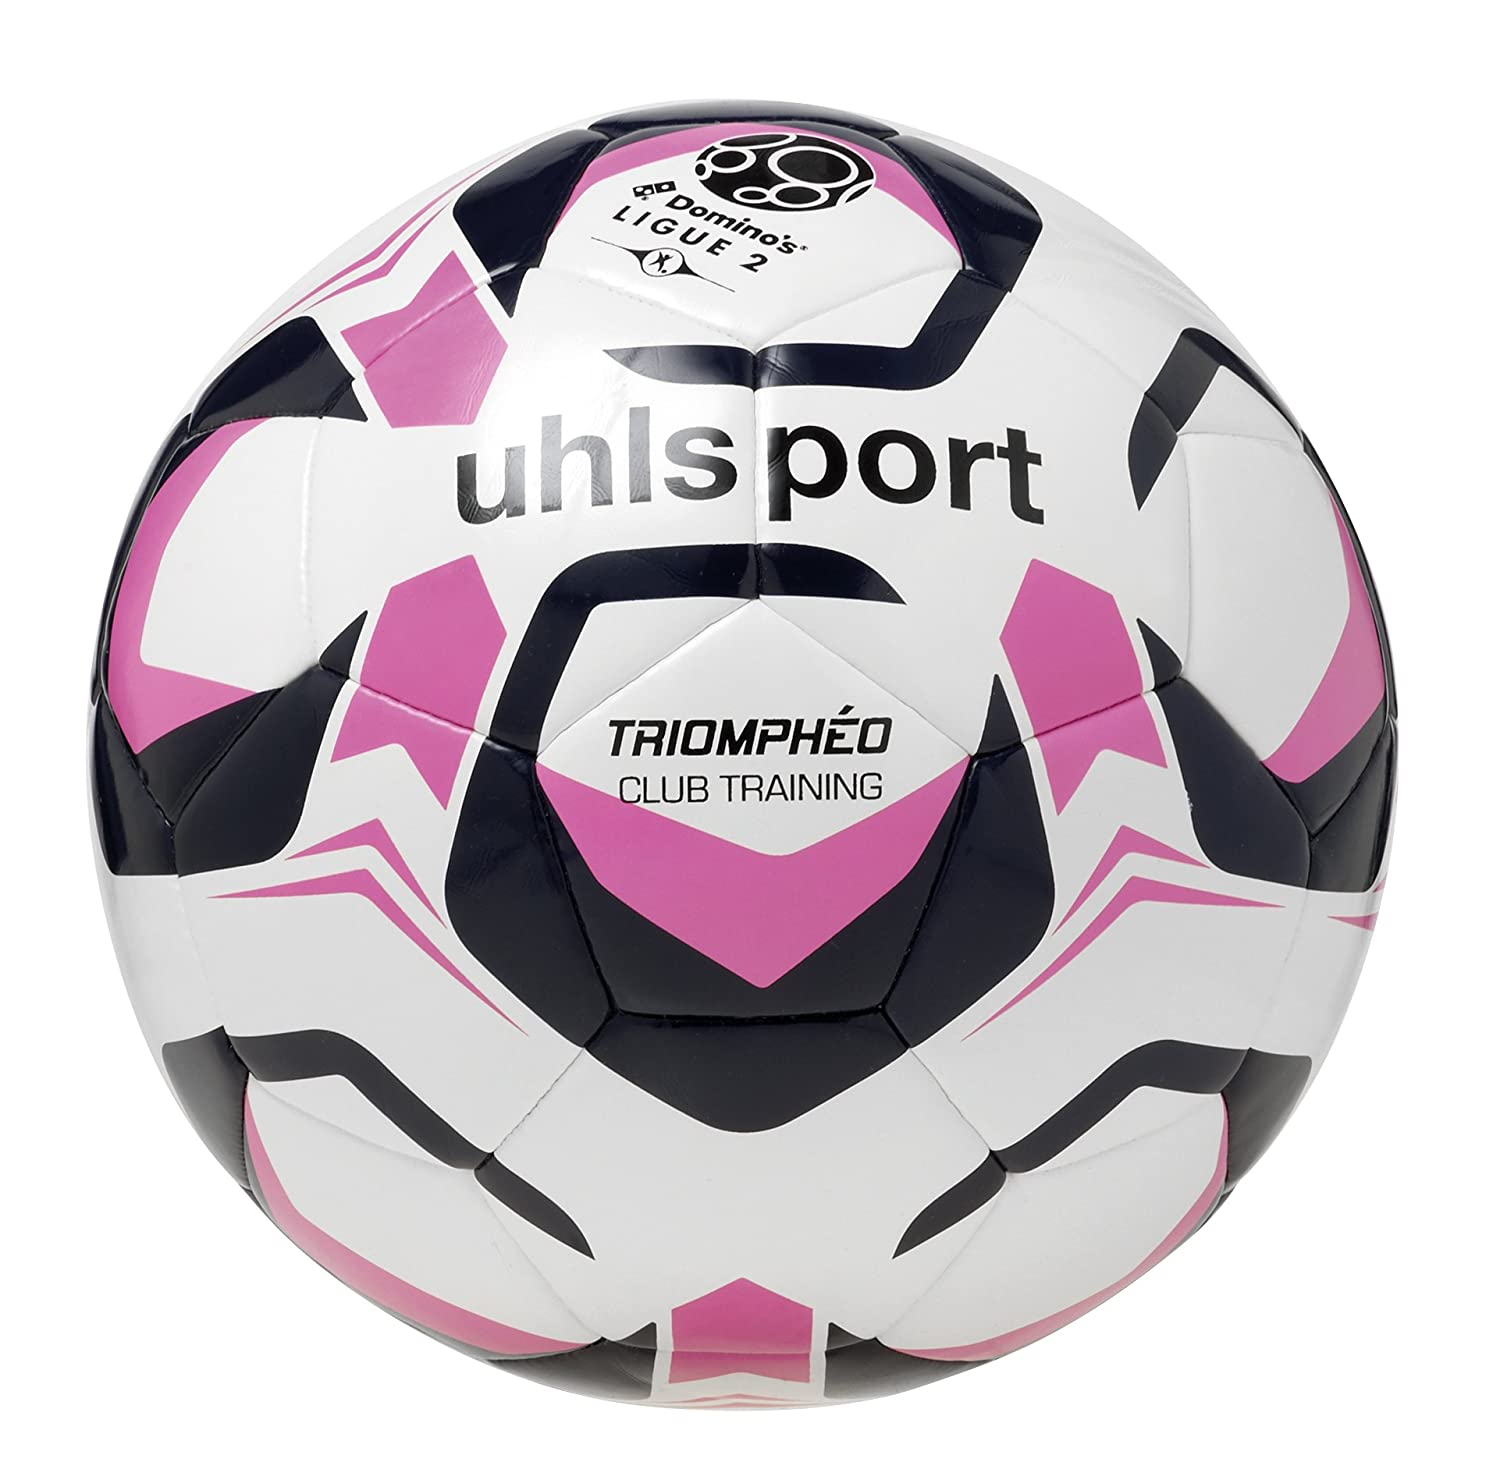 uhlsport - triomphèo Club Training - Balón Fútbol - Performances ...